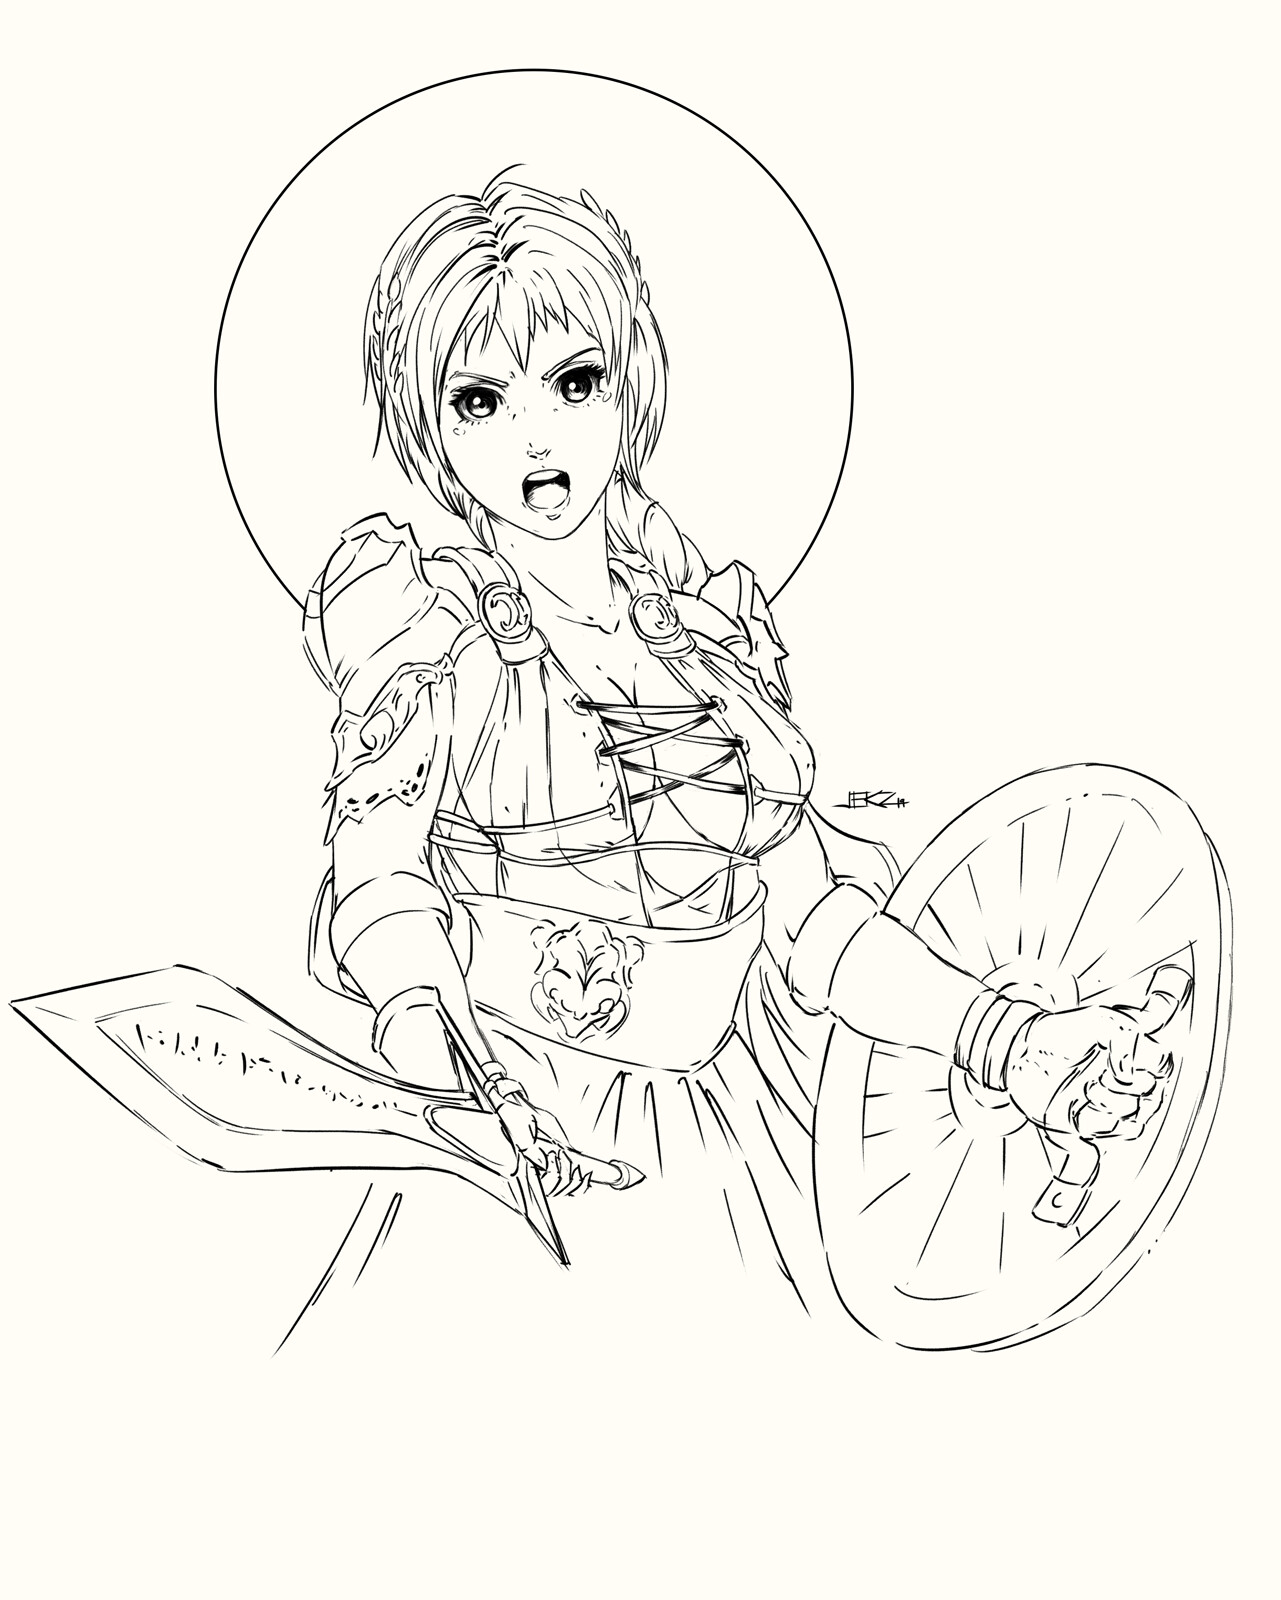 Inktober 2019 (Day 06/31) - Sophitia of Soulcalibur Video Game, this one is really challenging. lol